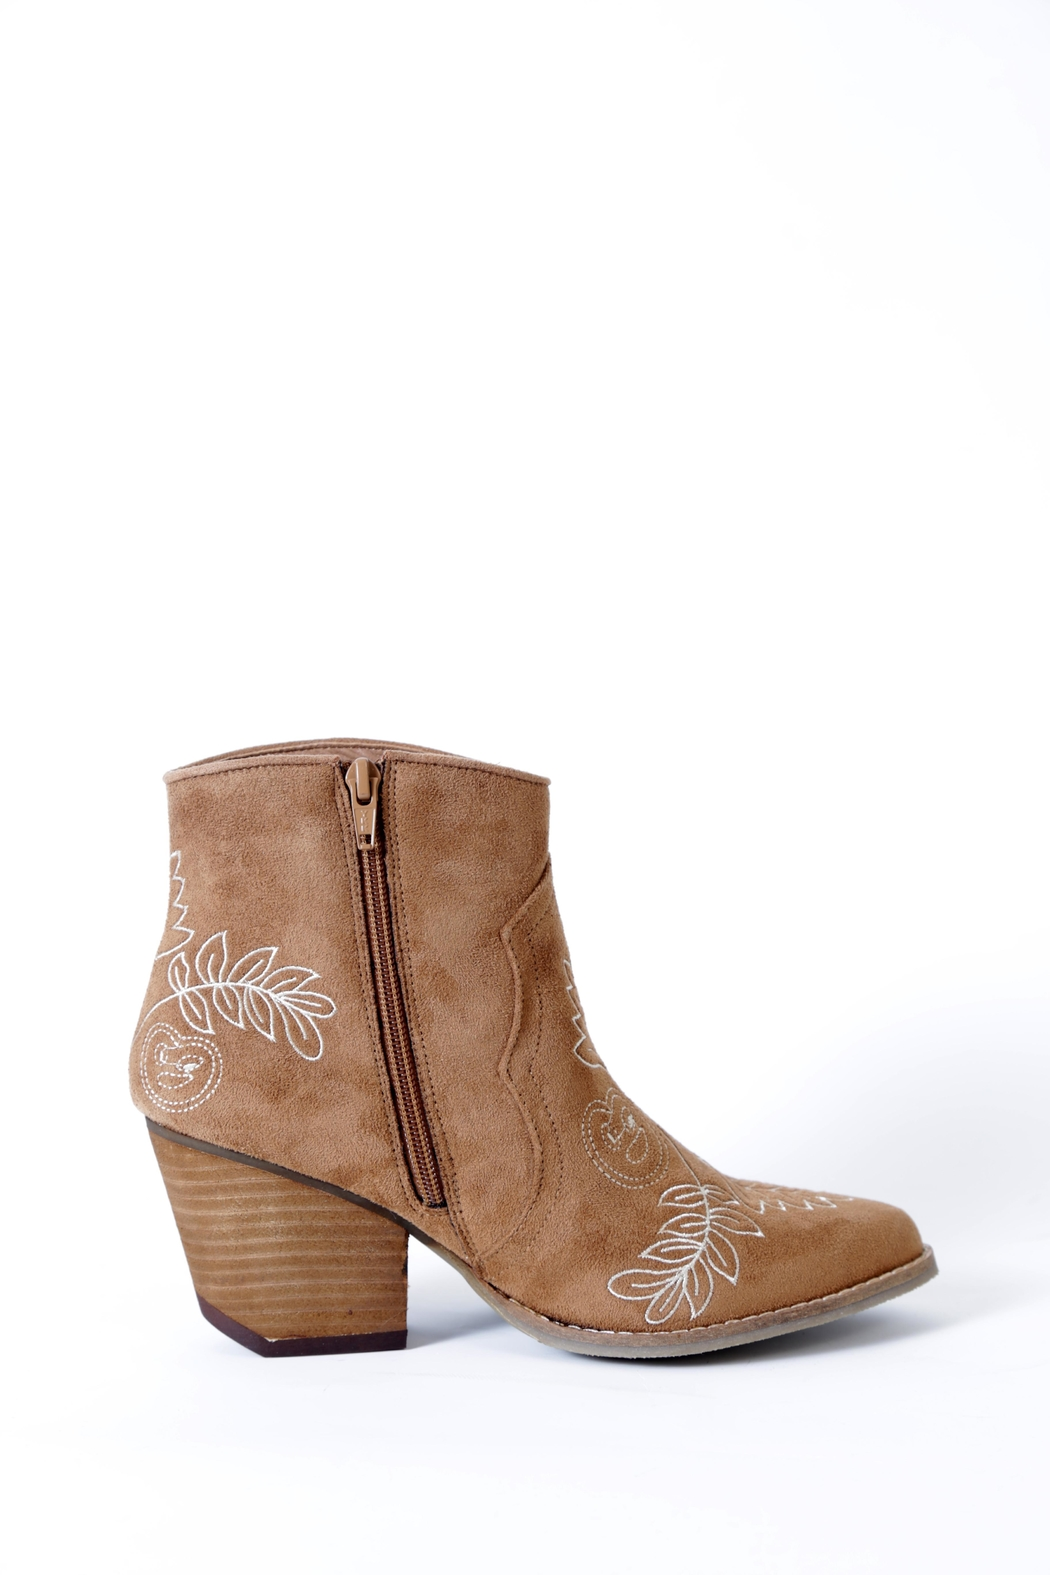 Coconuts by Matisse Axis Embroidered Boot - Side Cropped Image